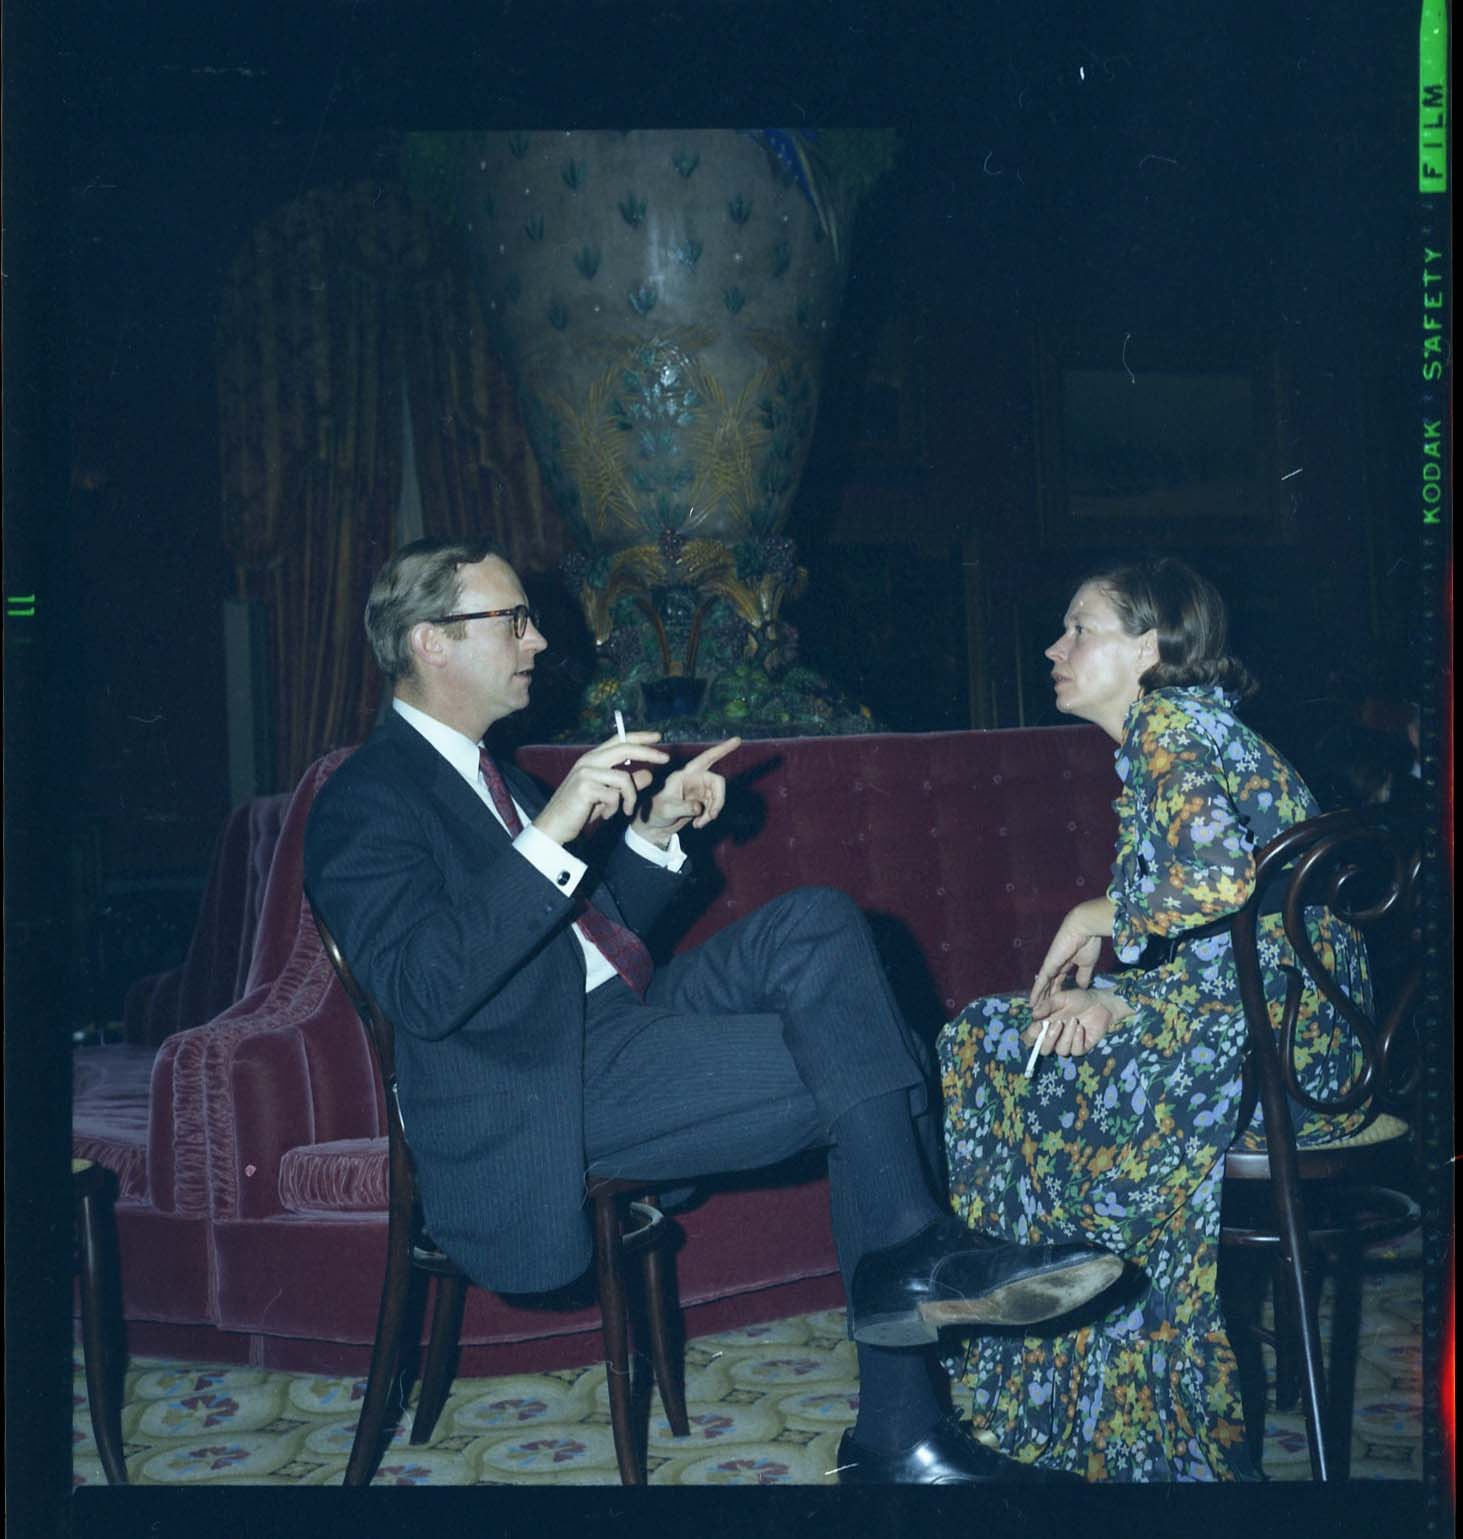 A man and woman sit and talk. The man is holding a cigarette.